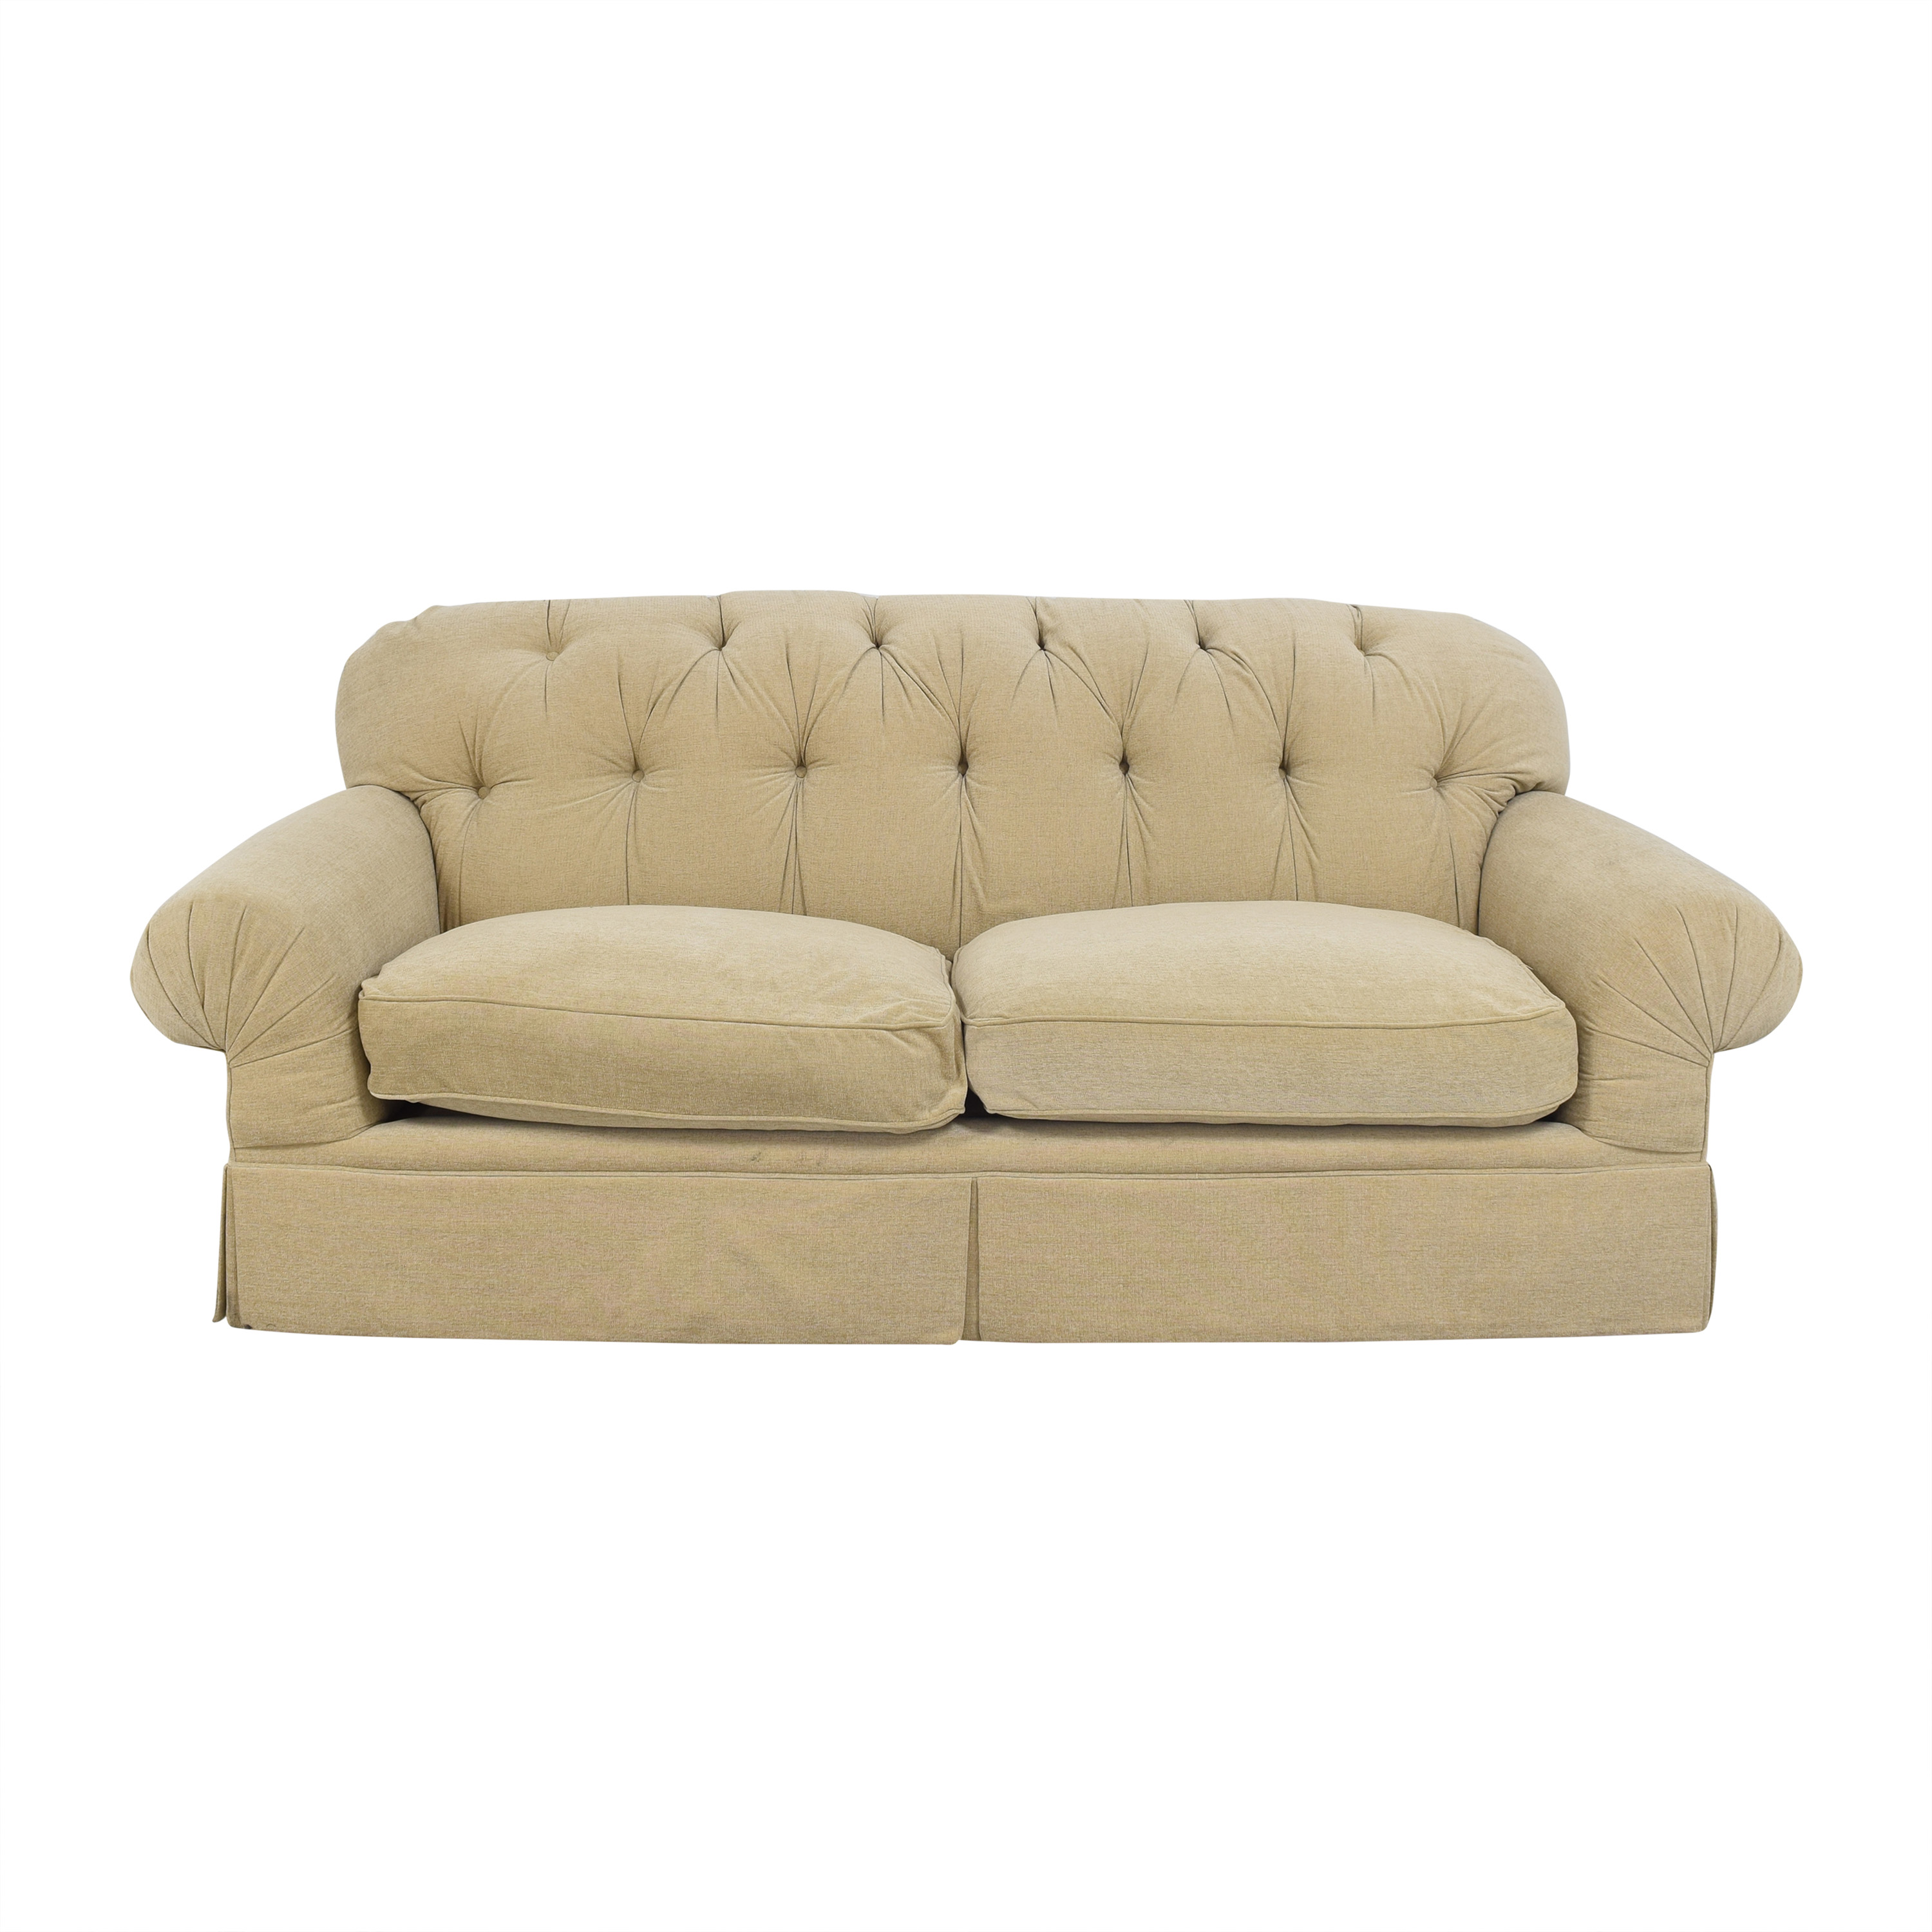 Tufted Two Cushion Sofa second hand